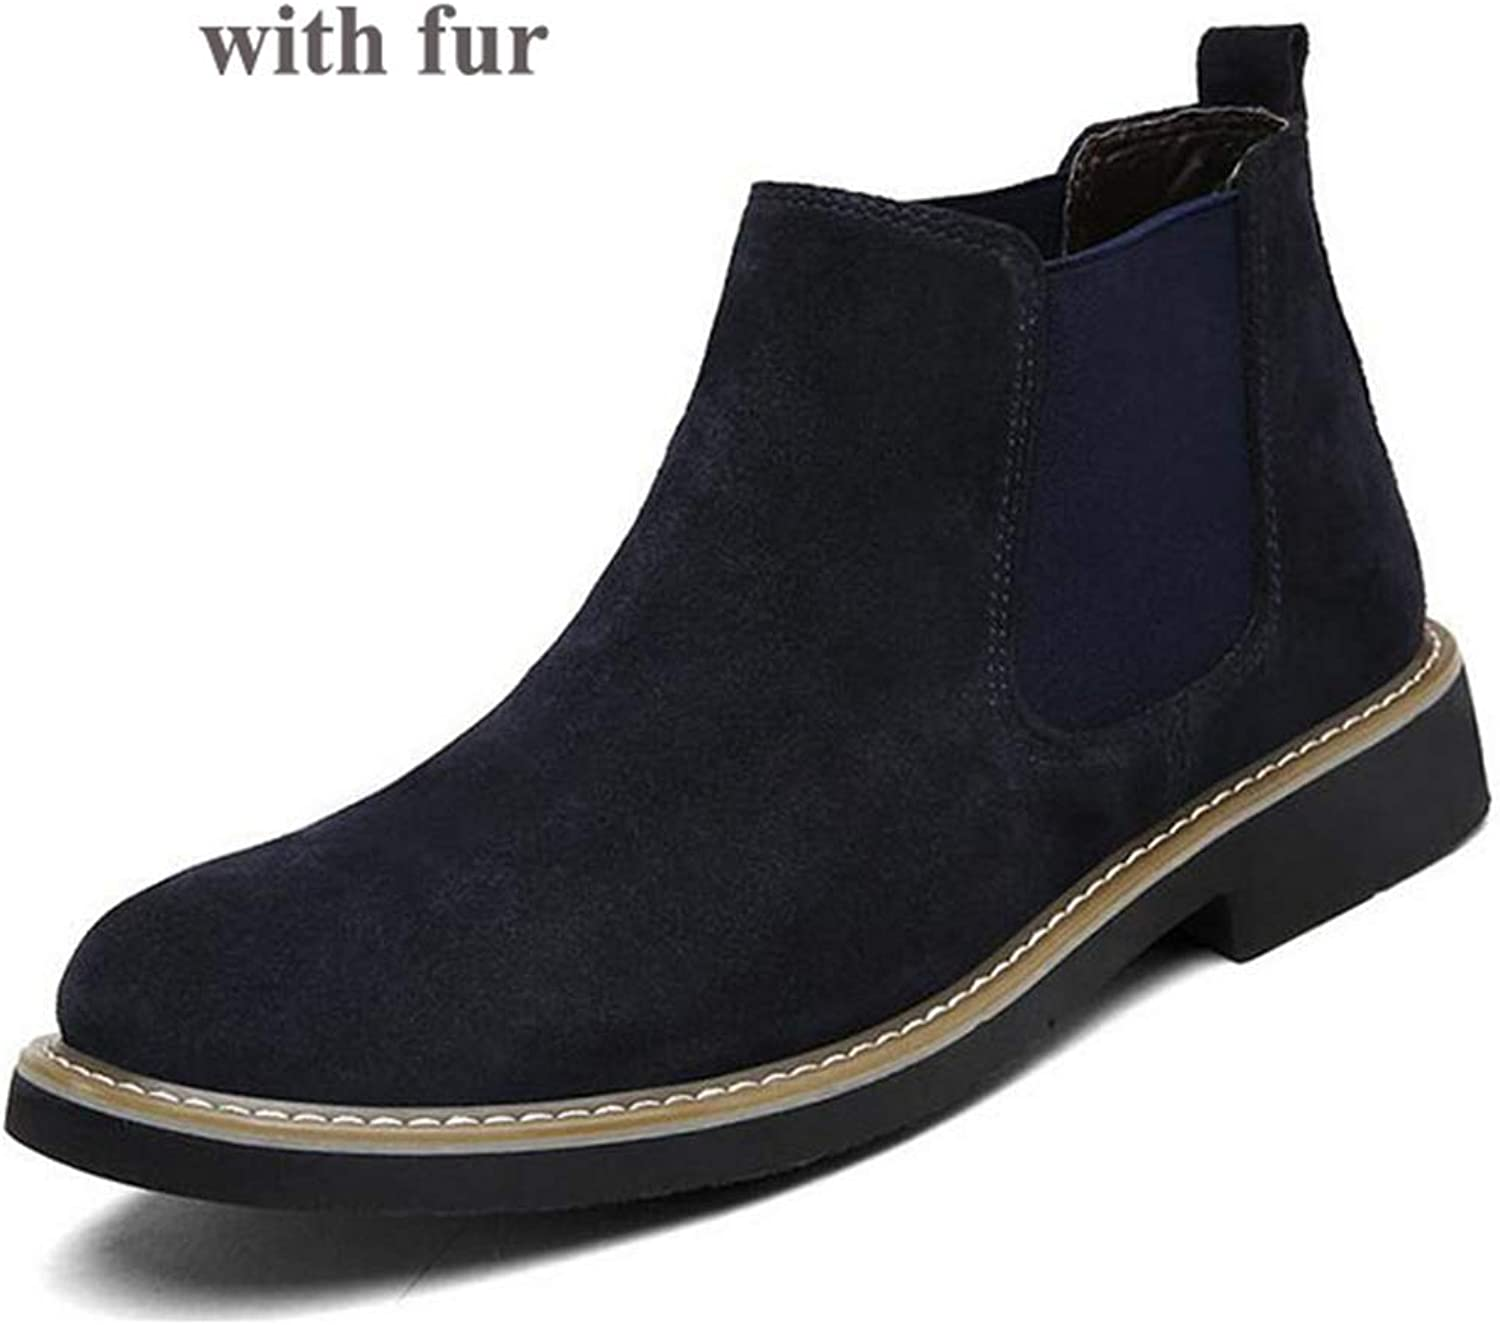 ZHRUI Men Chelsea Boots Fashion Ankle Leather Slip Ons Motorcycle Warm shoes (color   Deep bluee Fur, Size   5.5 UK)